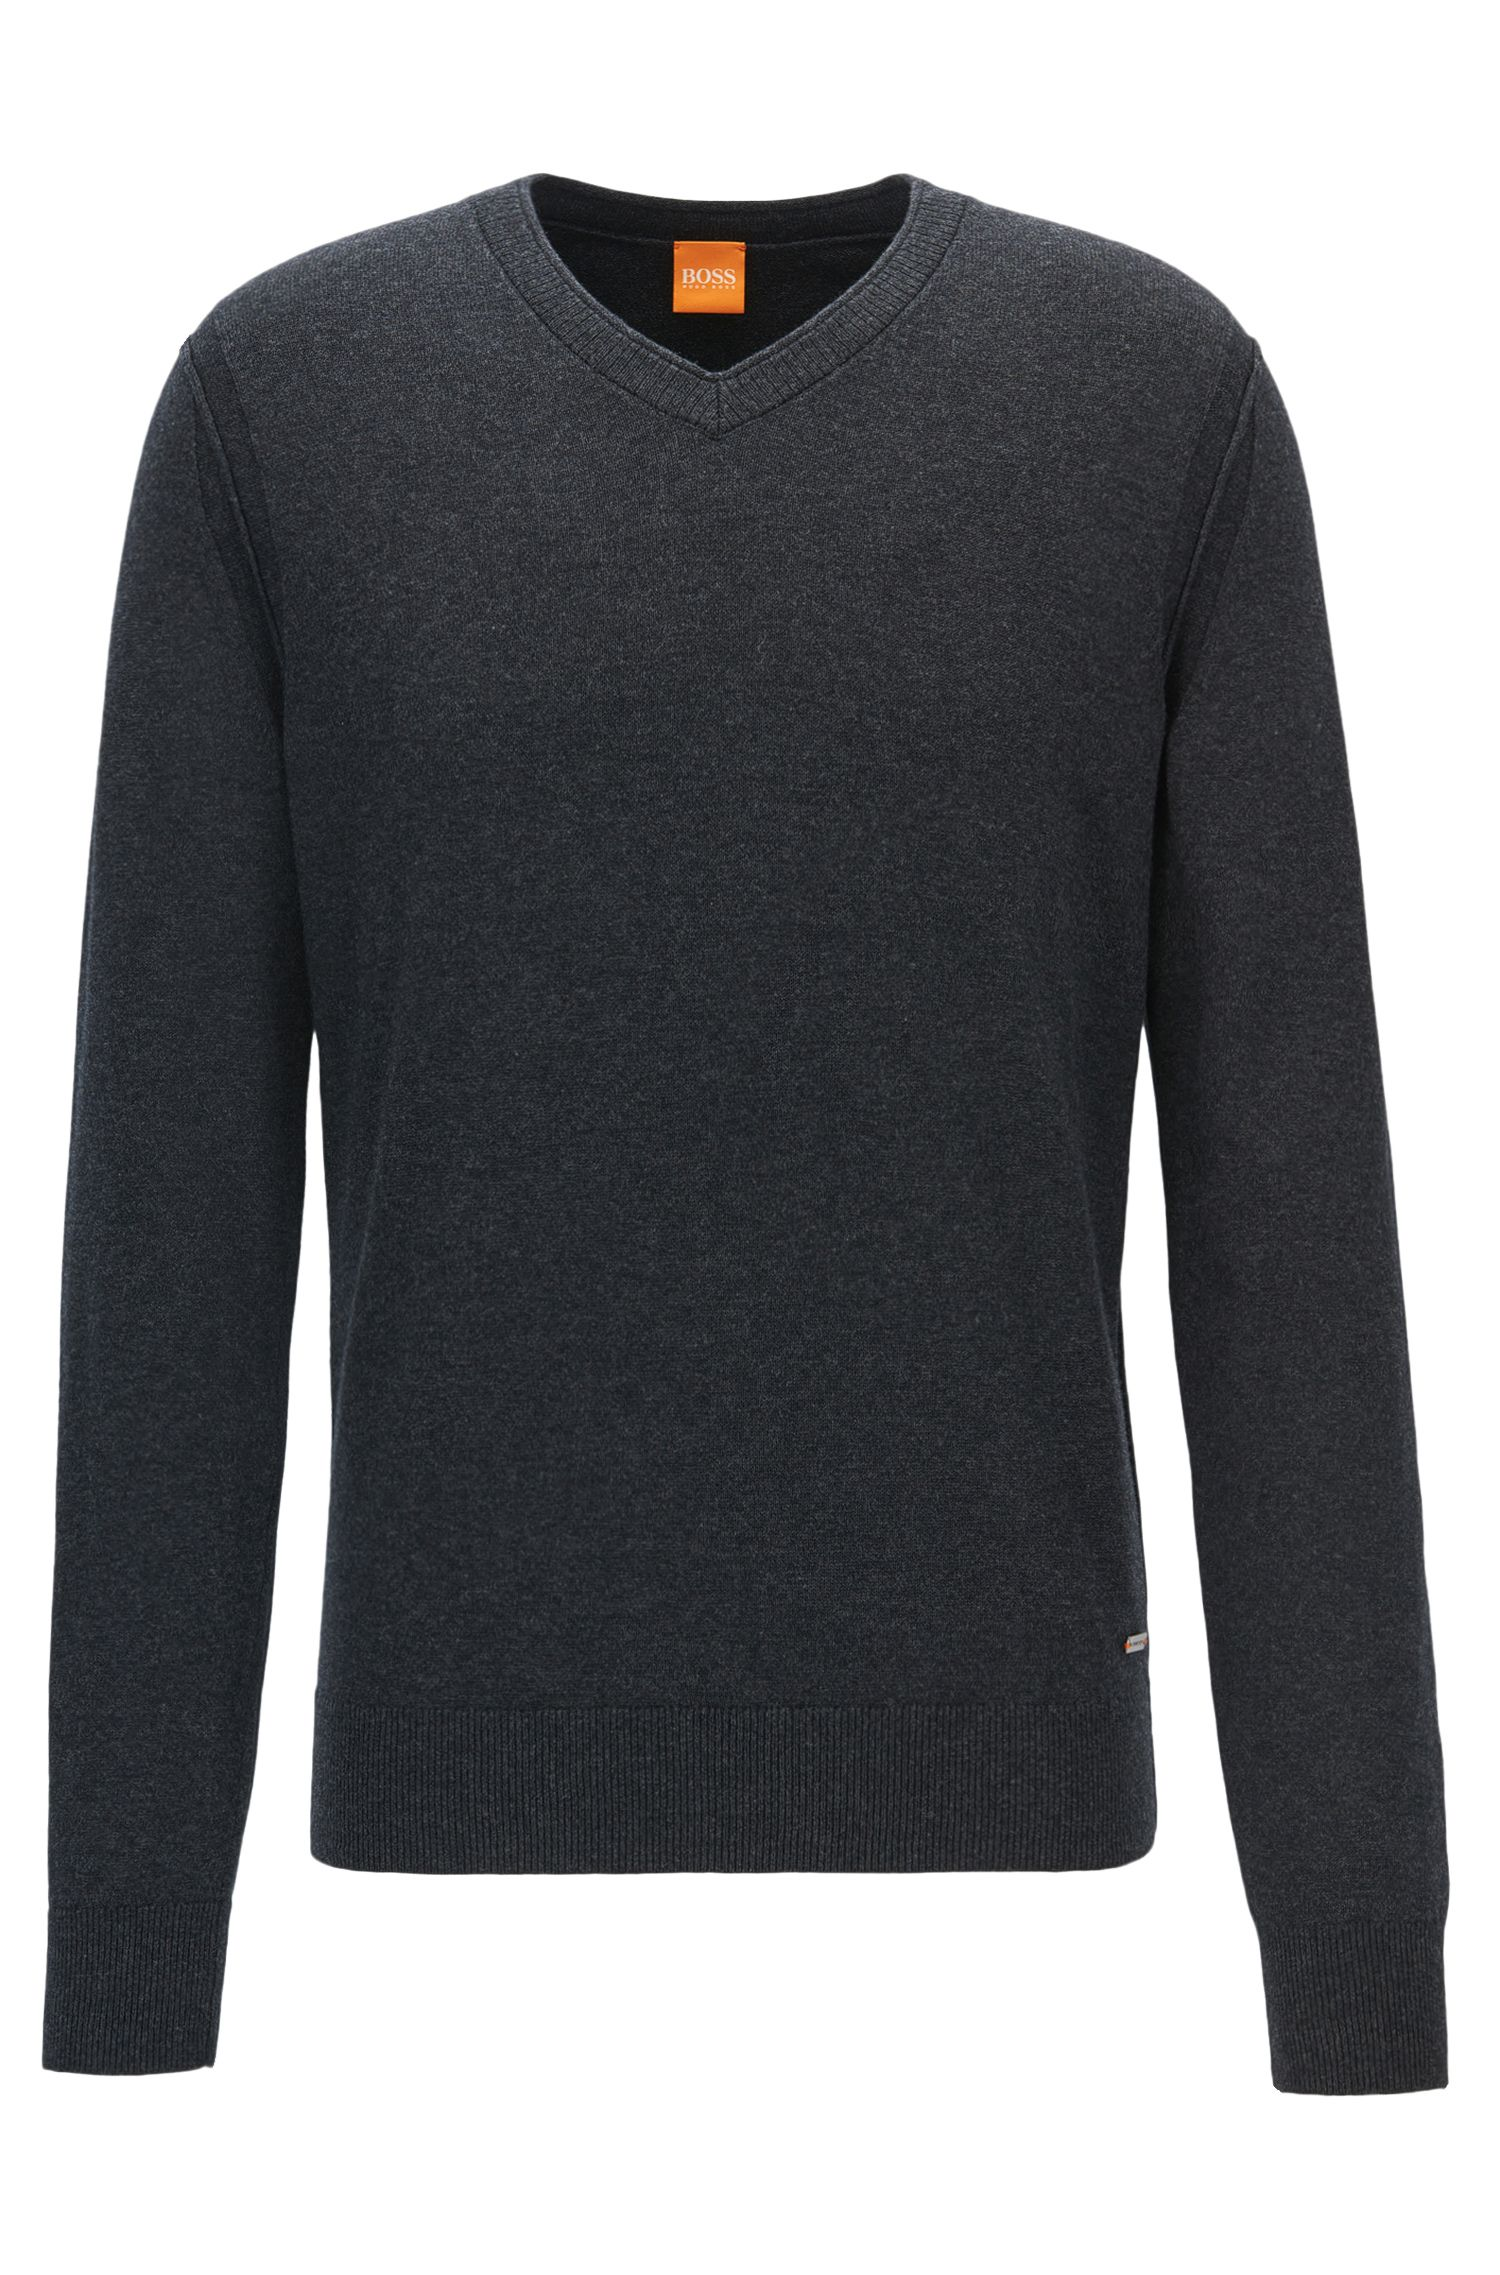 V-neck sweater in knitted blend